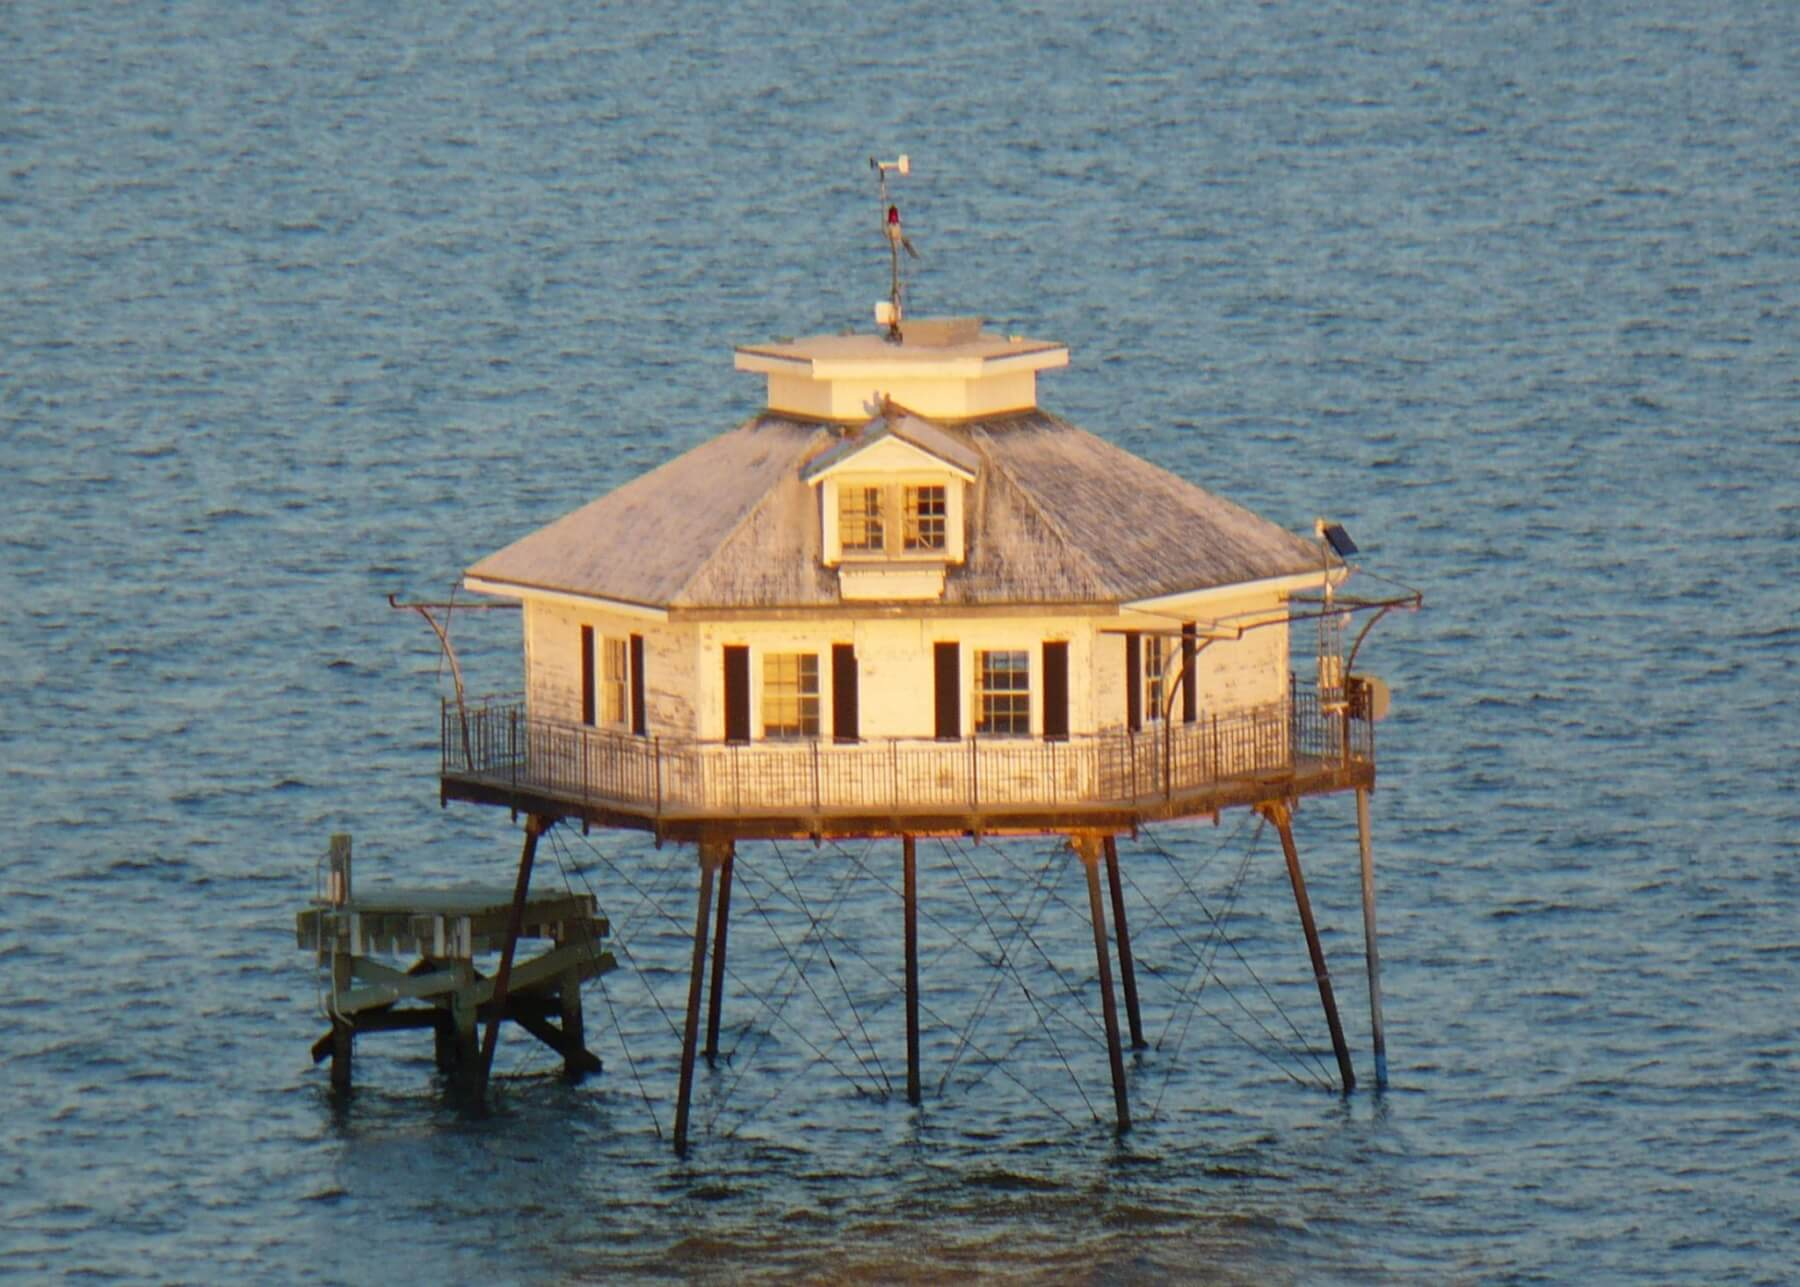 Alabama Lighthouse Association considers funding options